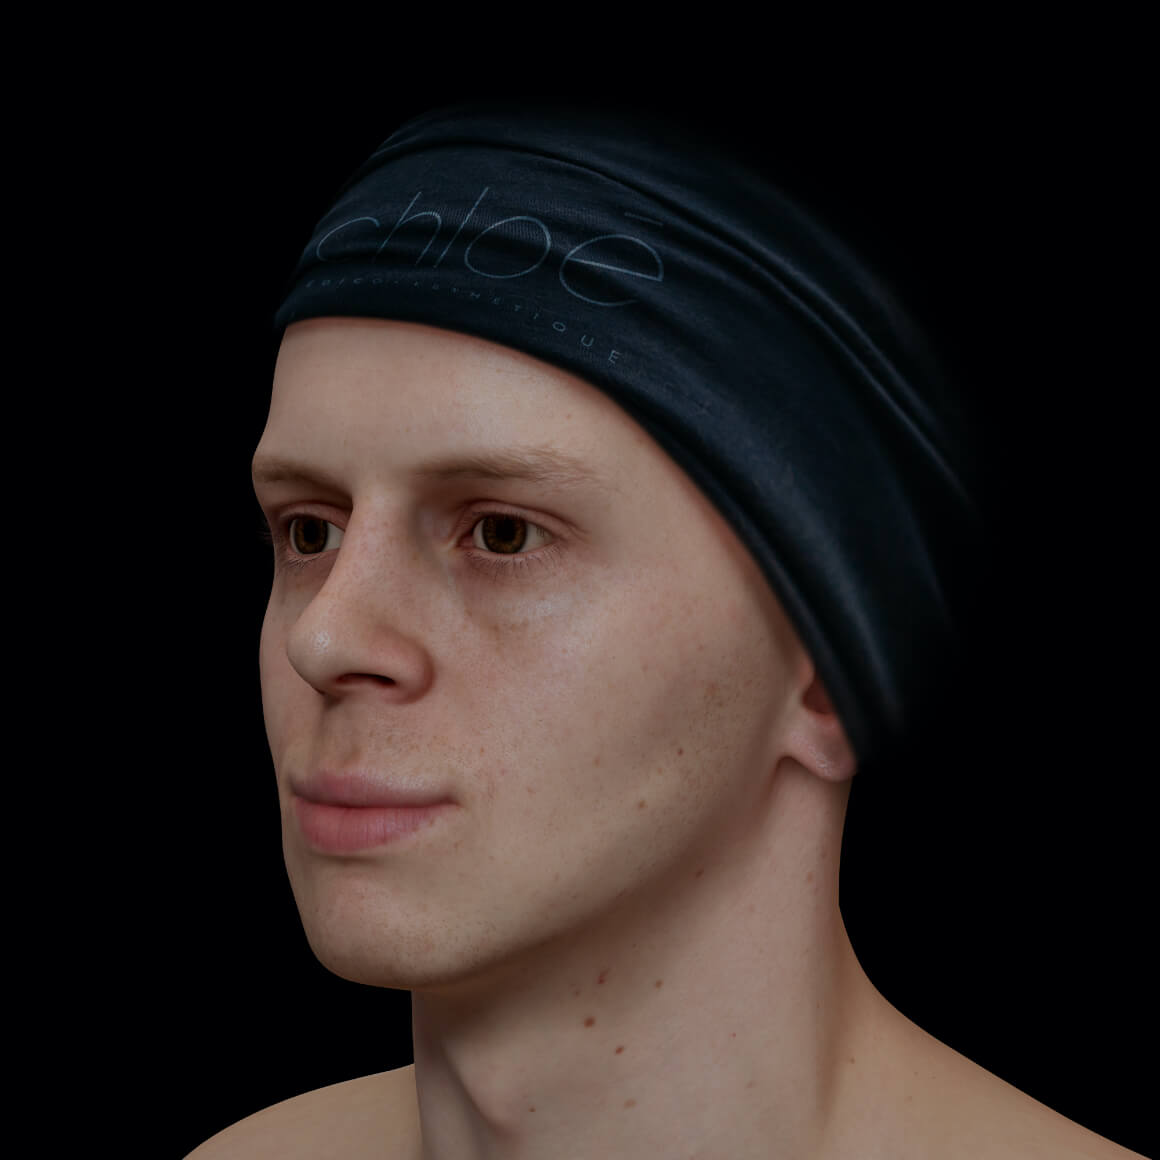 Male patient at Clinique Chloé positioned at an angle after Radiesse injections for jawline definition